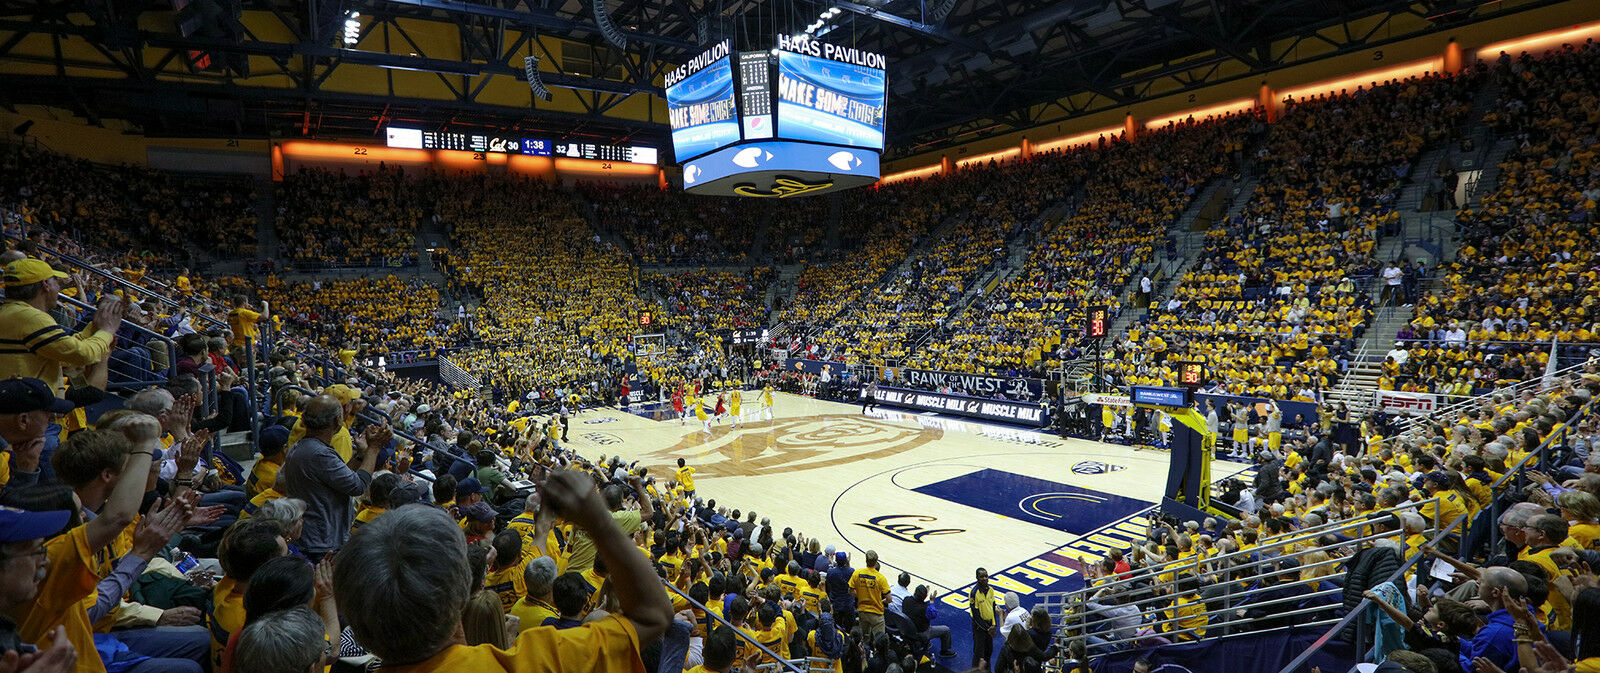 Washington Huskies at Cal Bears Basketball